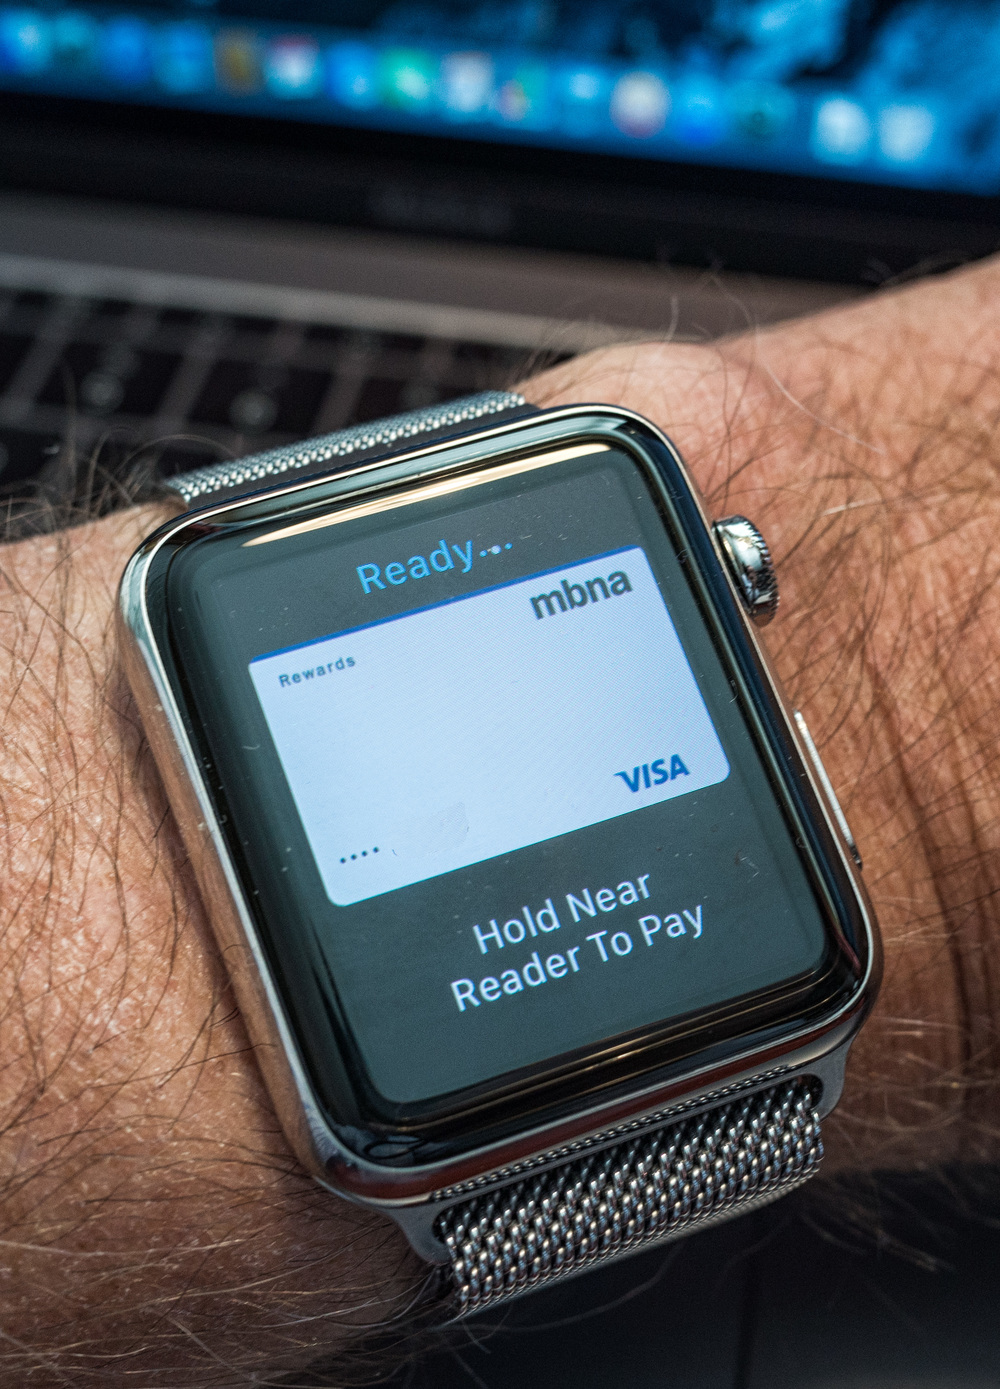 Paying for a MacBook with Apple Pay and Watch